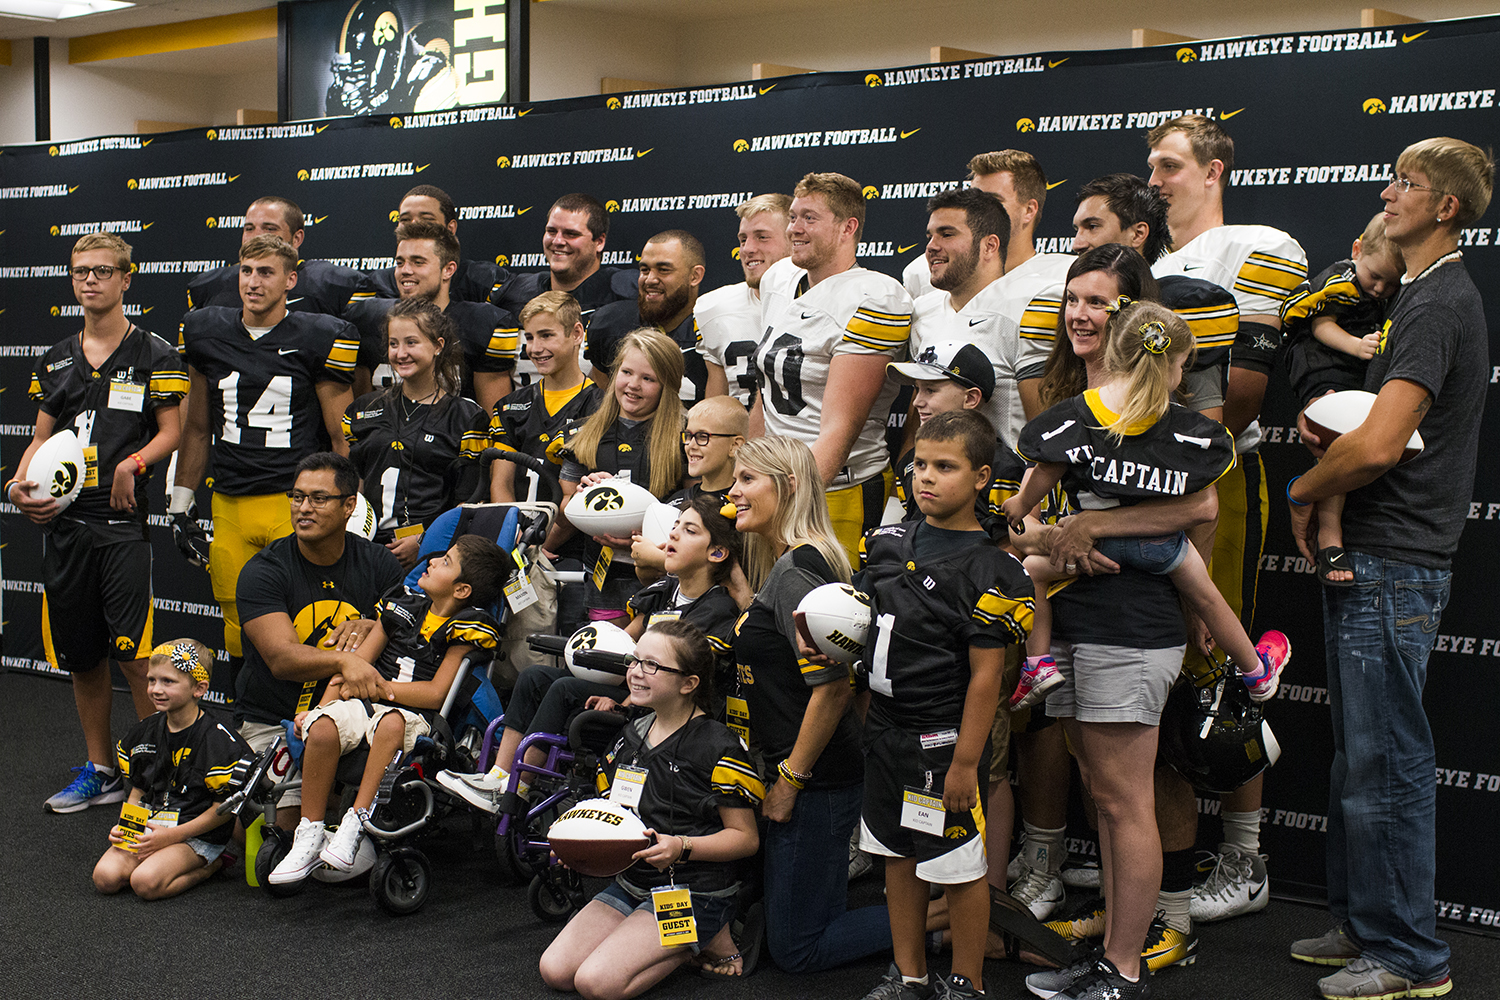 The+Iowa+football+team+takes+a+photo+with+the+Kid+Captains+and+their+families+during+Iowa+Football+Kids%27+Day+at+Kinnick+Stadium+on+Saturday%2C+Aug.+11%2C+2018.+